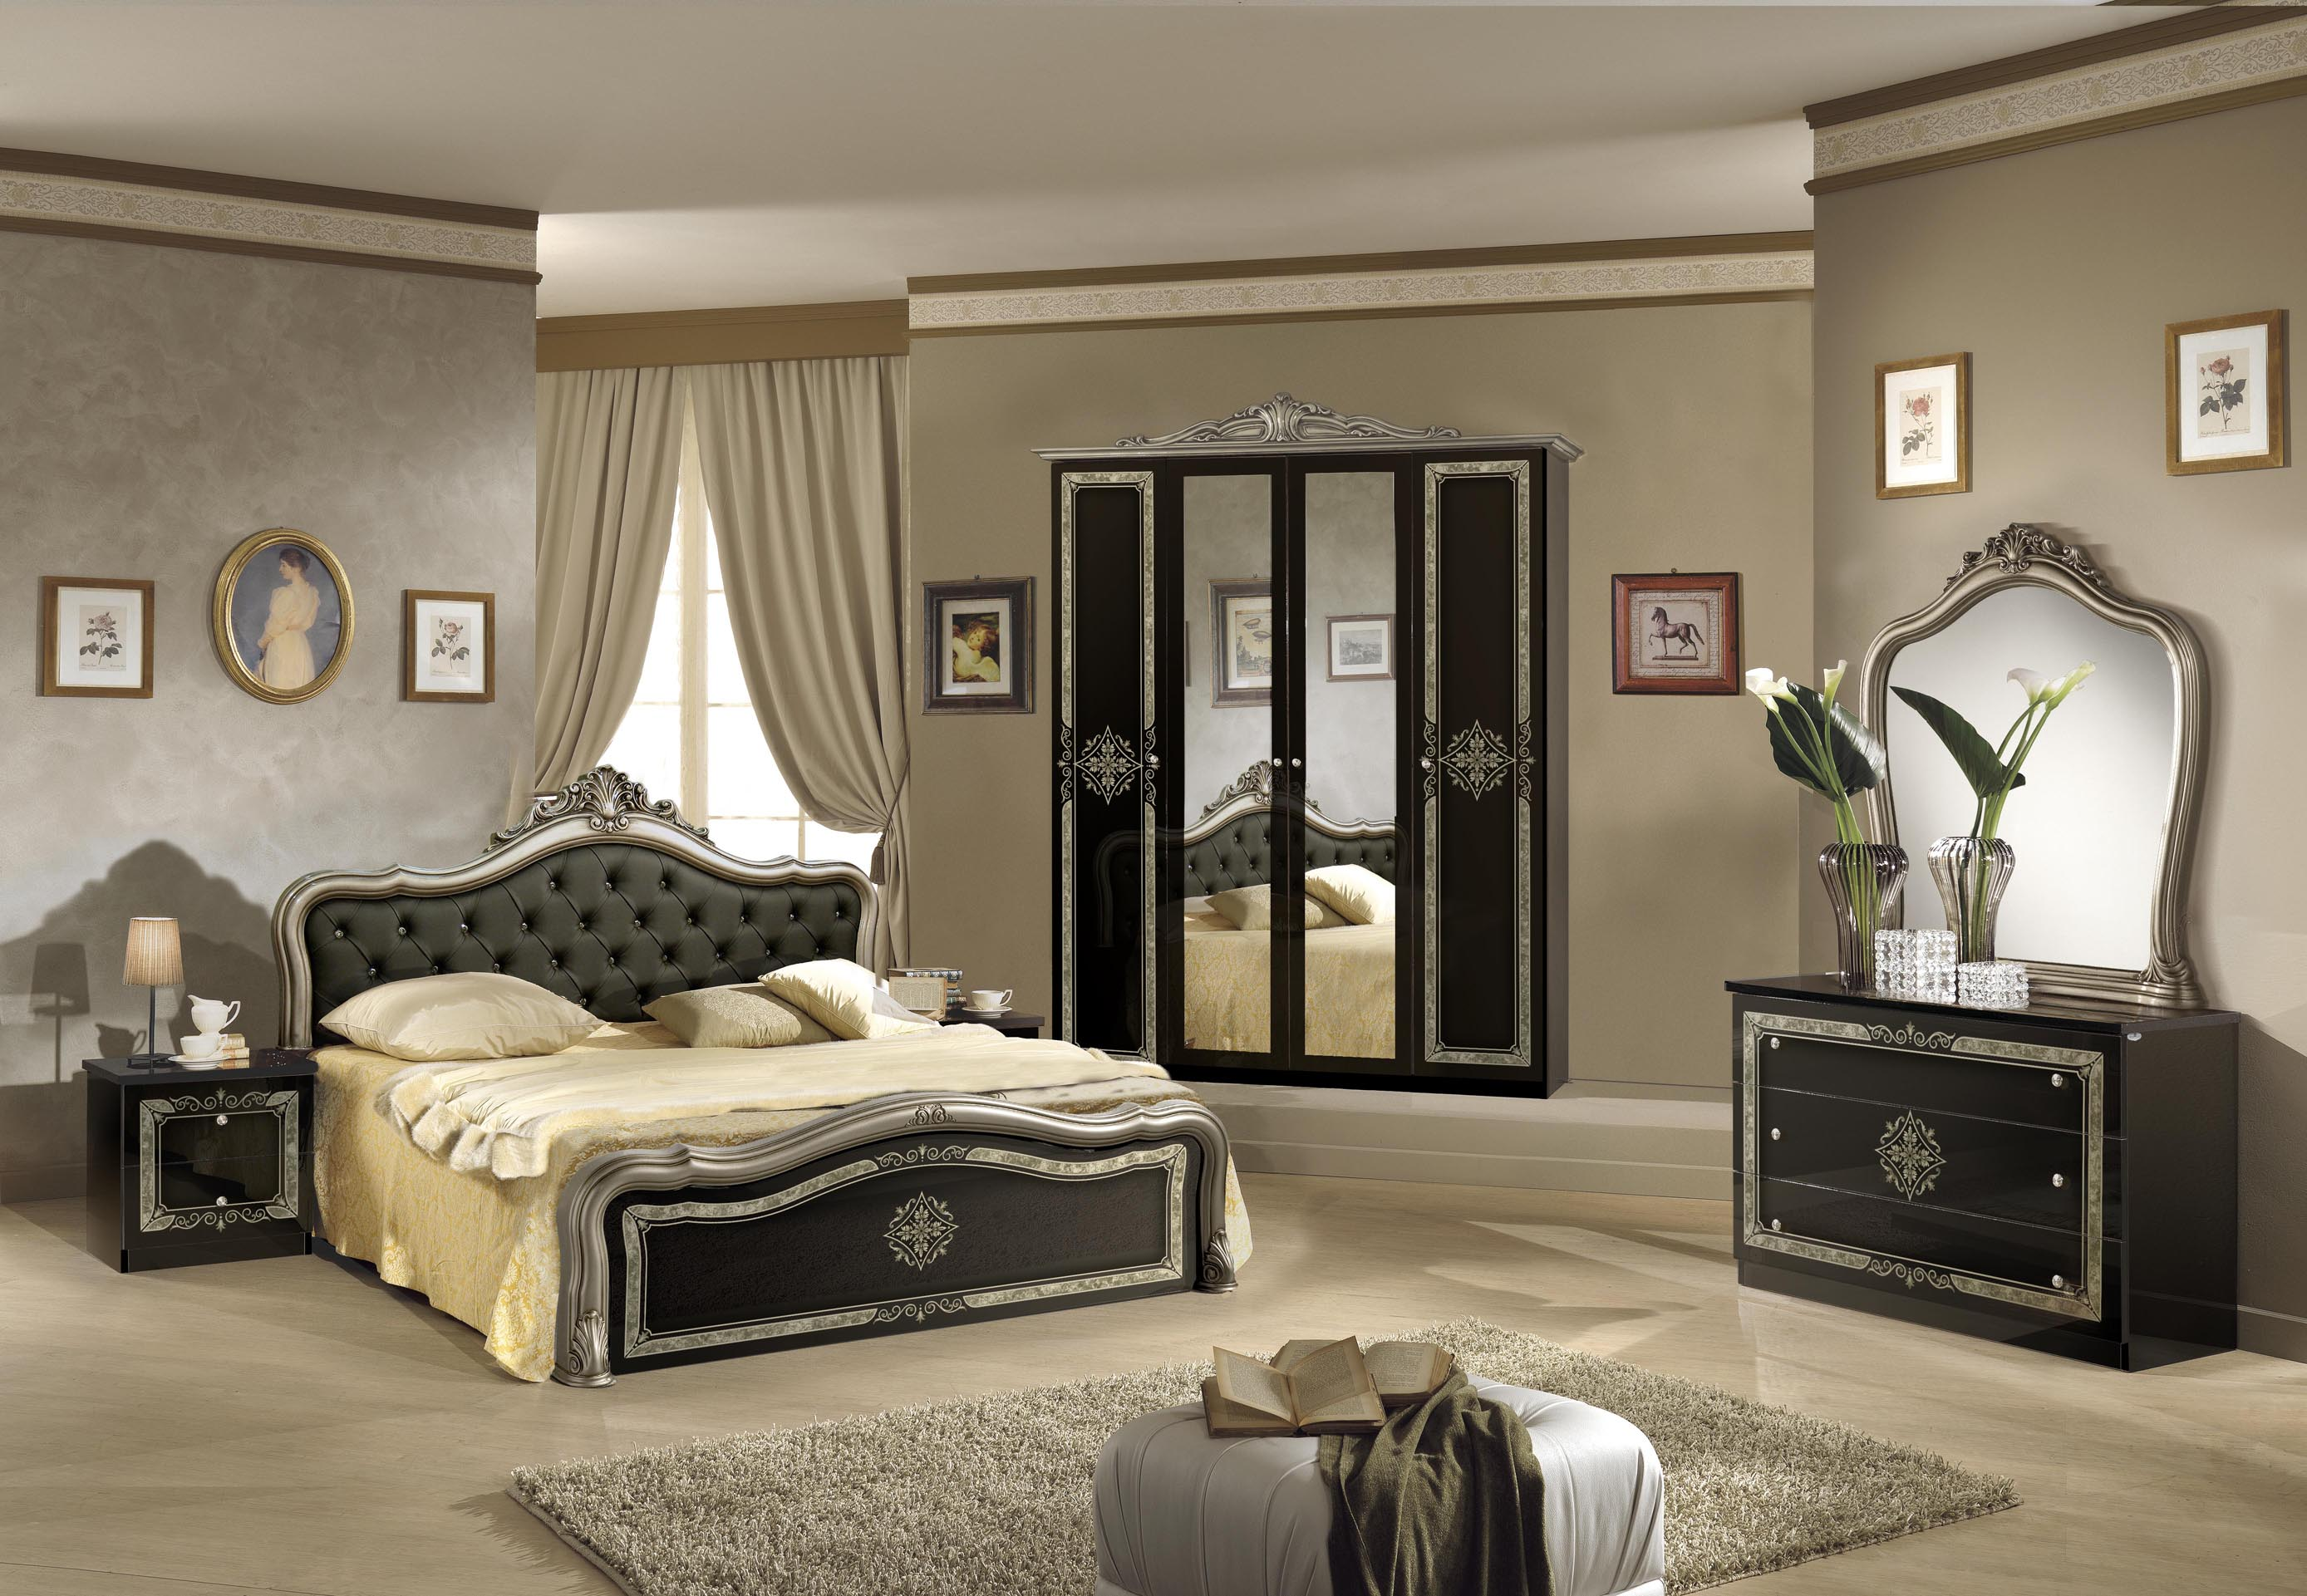 kommode mit spiegel in beige lucy f r schlafzimmer klassik king com m nec rb l spech. Black Bedroom Furniture Sets. Home Design Ideas